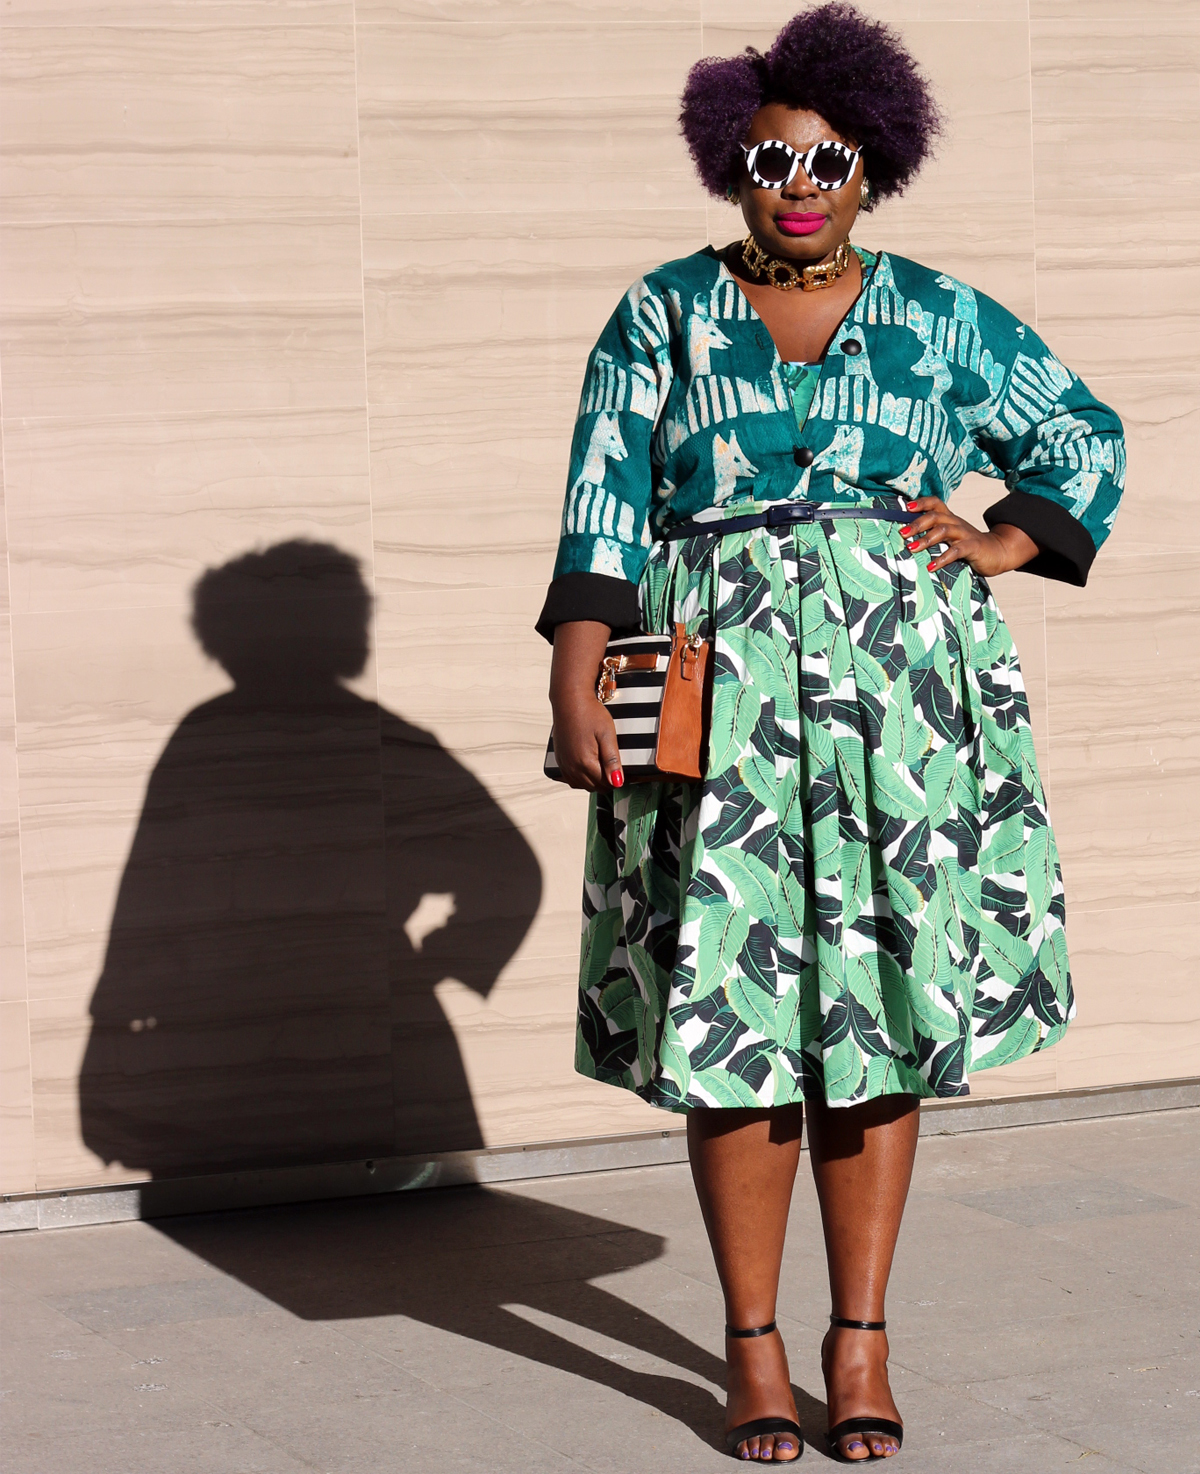 plus size style fashion week outfit fashion week street style 10